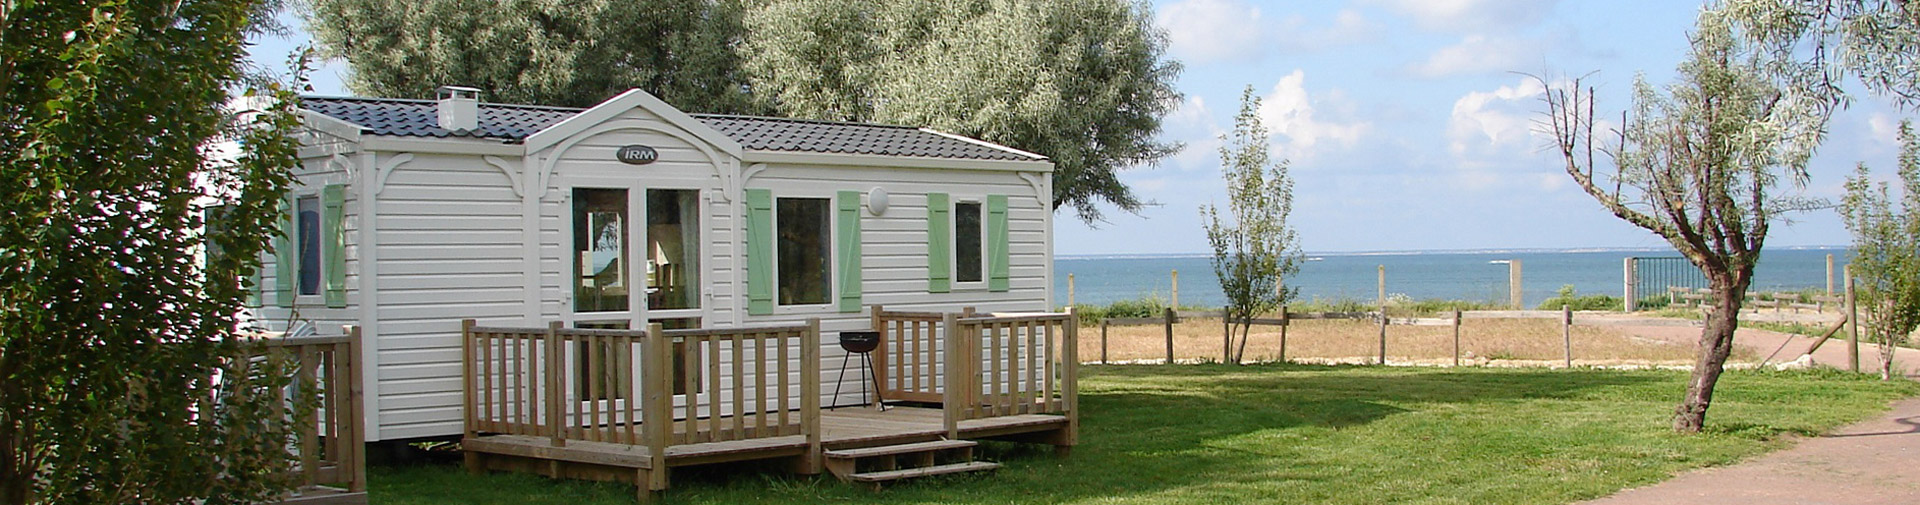 location-mobil-home-ile-oleron-modele7